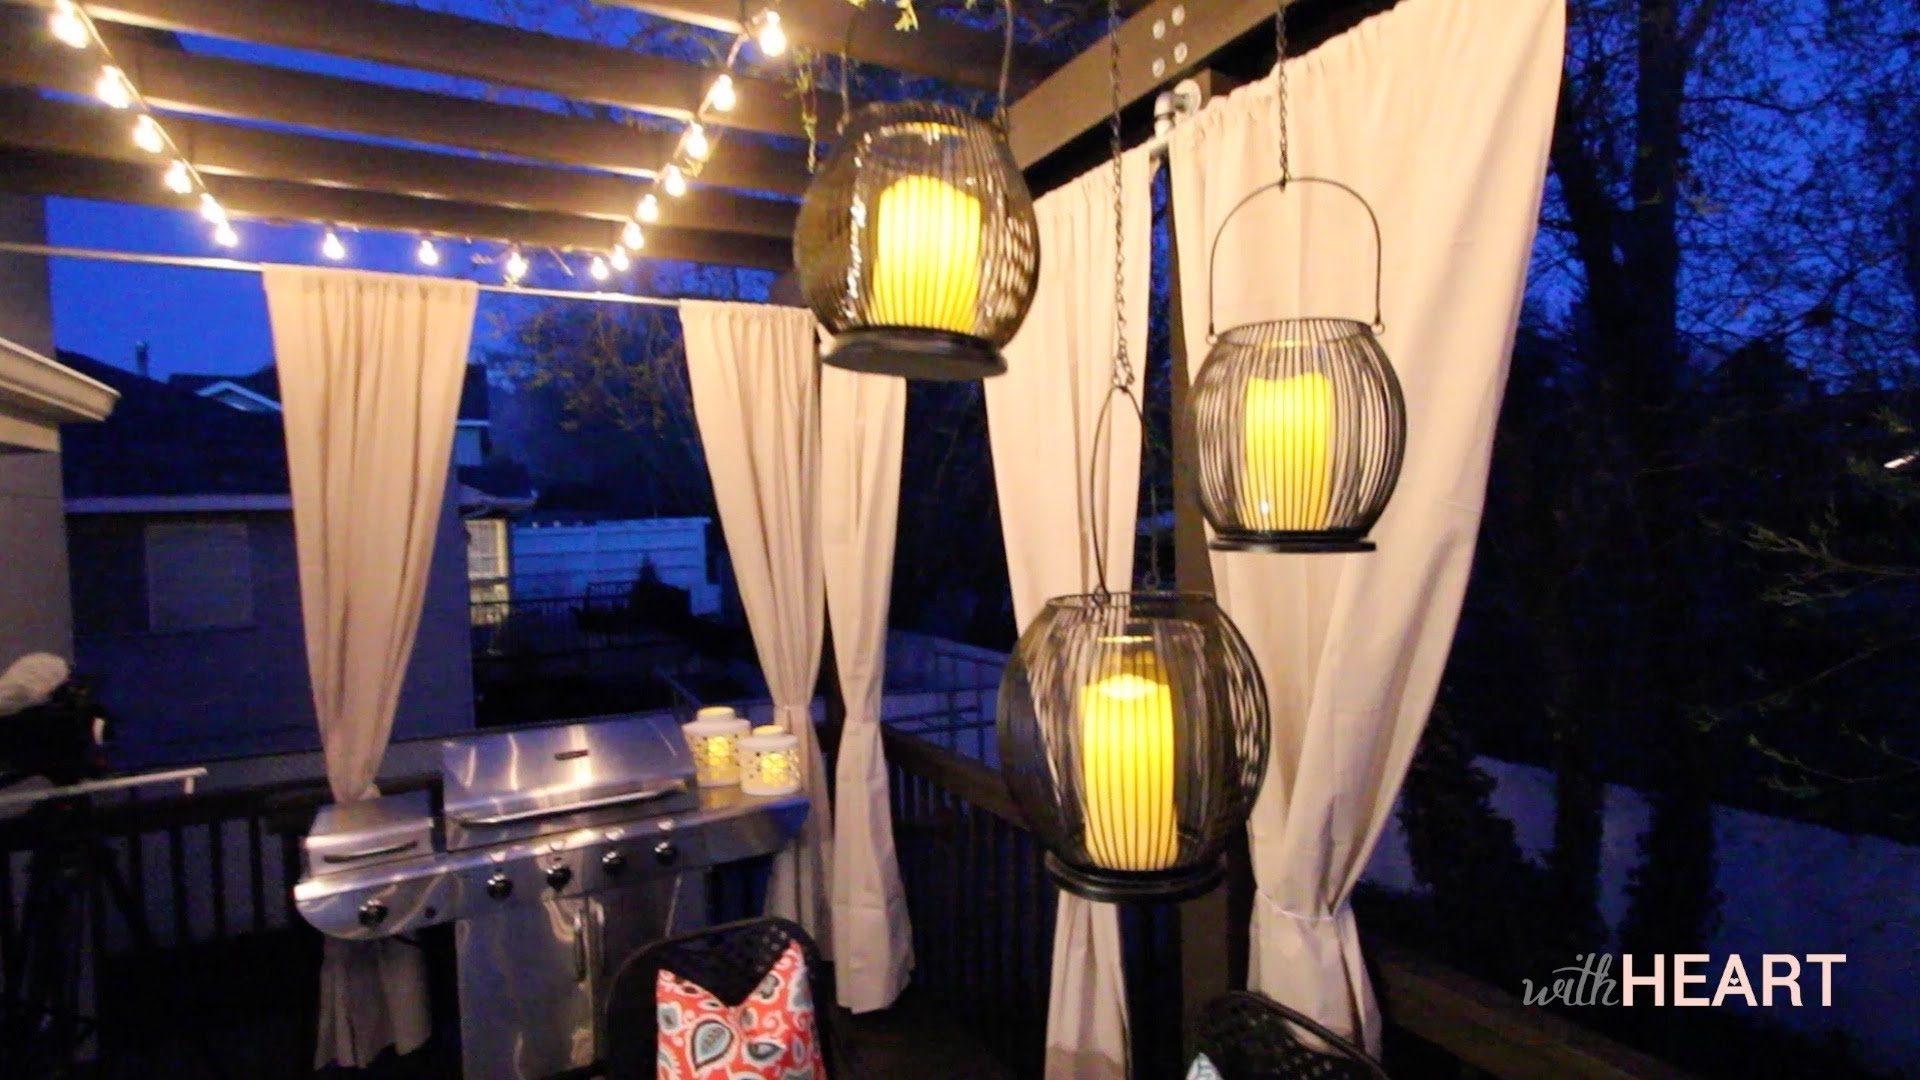 Outdoor String Lights And Hanging Lanterns Withheart Youtube Large Regarding Outdoor Hanging Lights On String (#12 of 15)